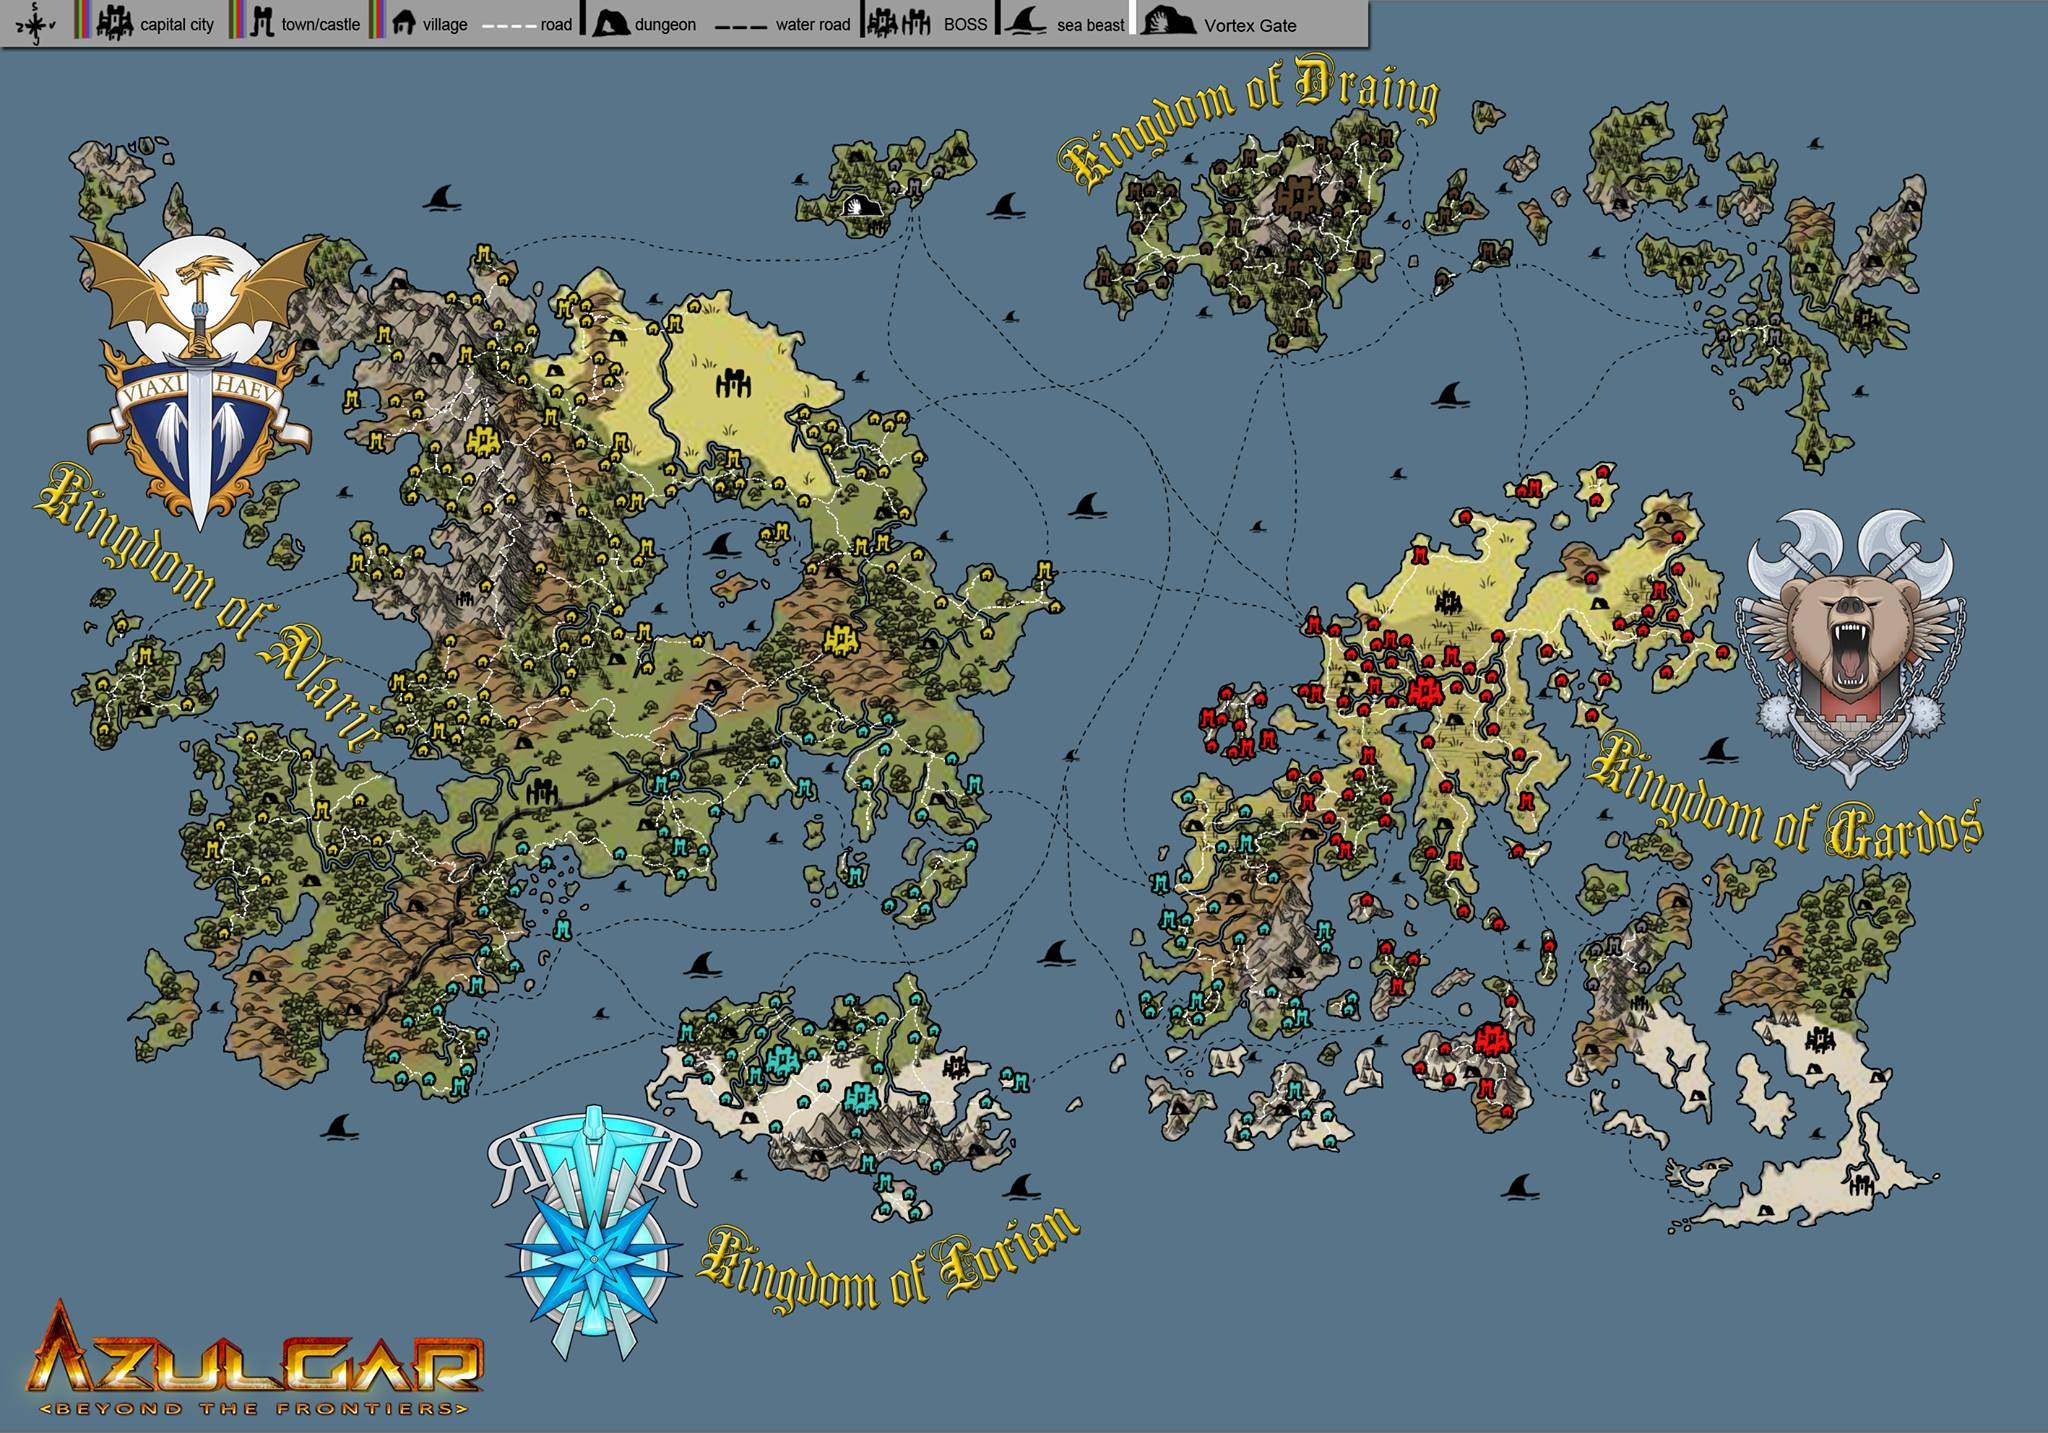 World map image azulgar beyond the frontiers mod db add media report rss world map view original gumiabroncs Image collections